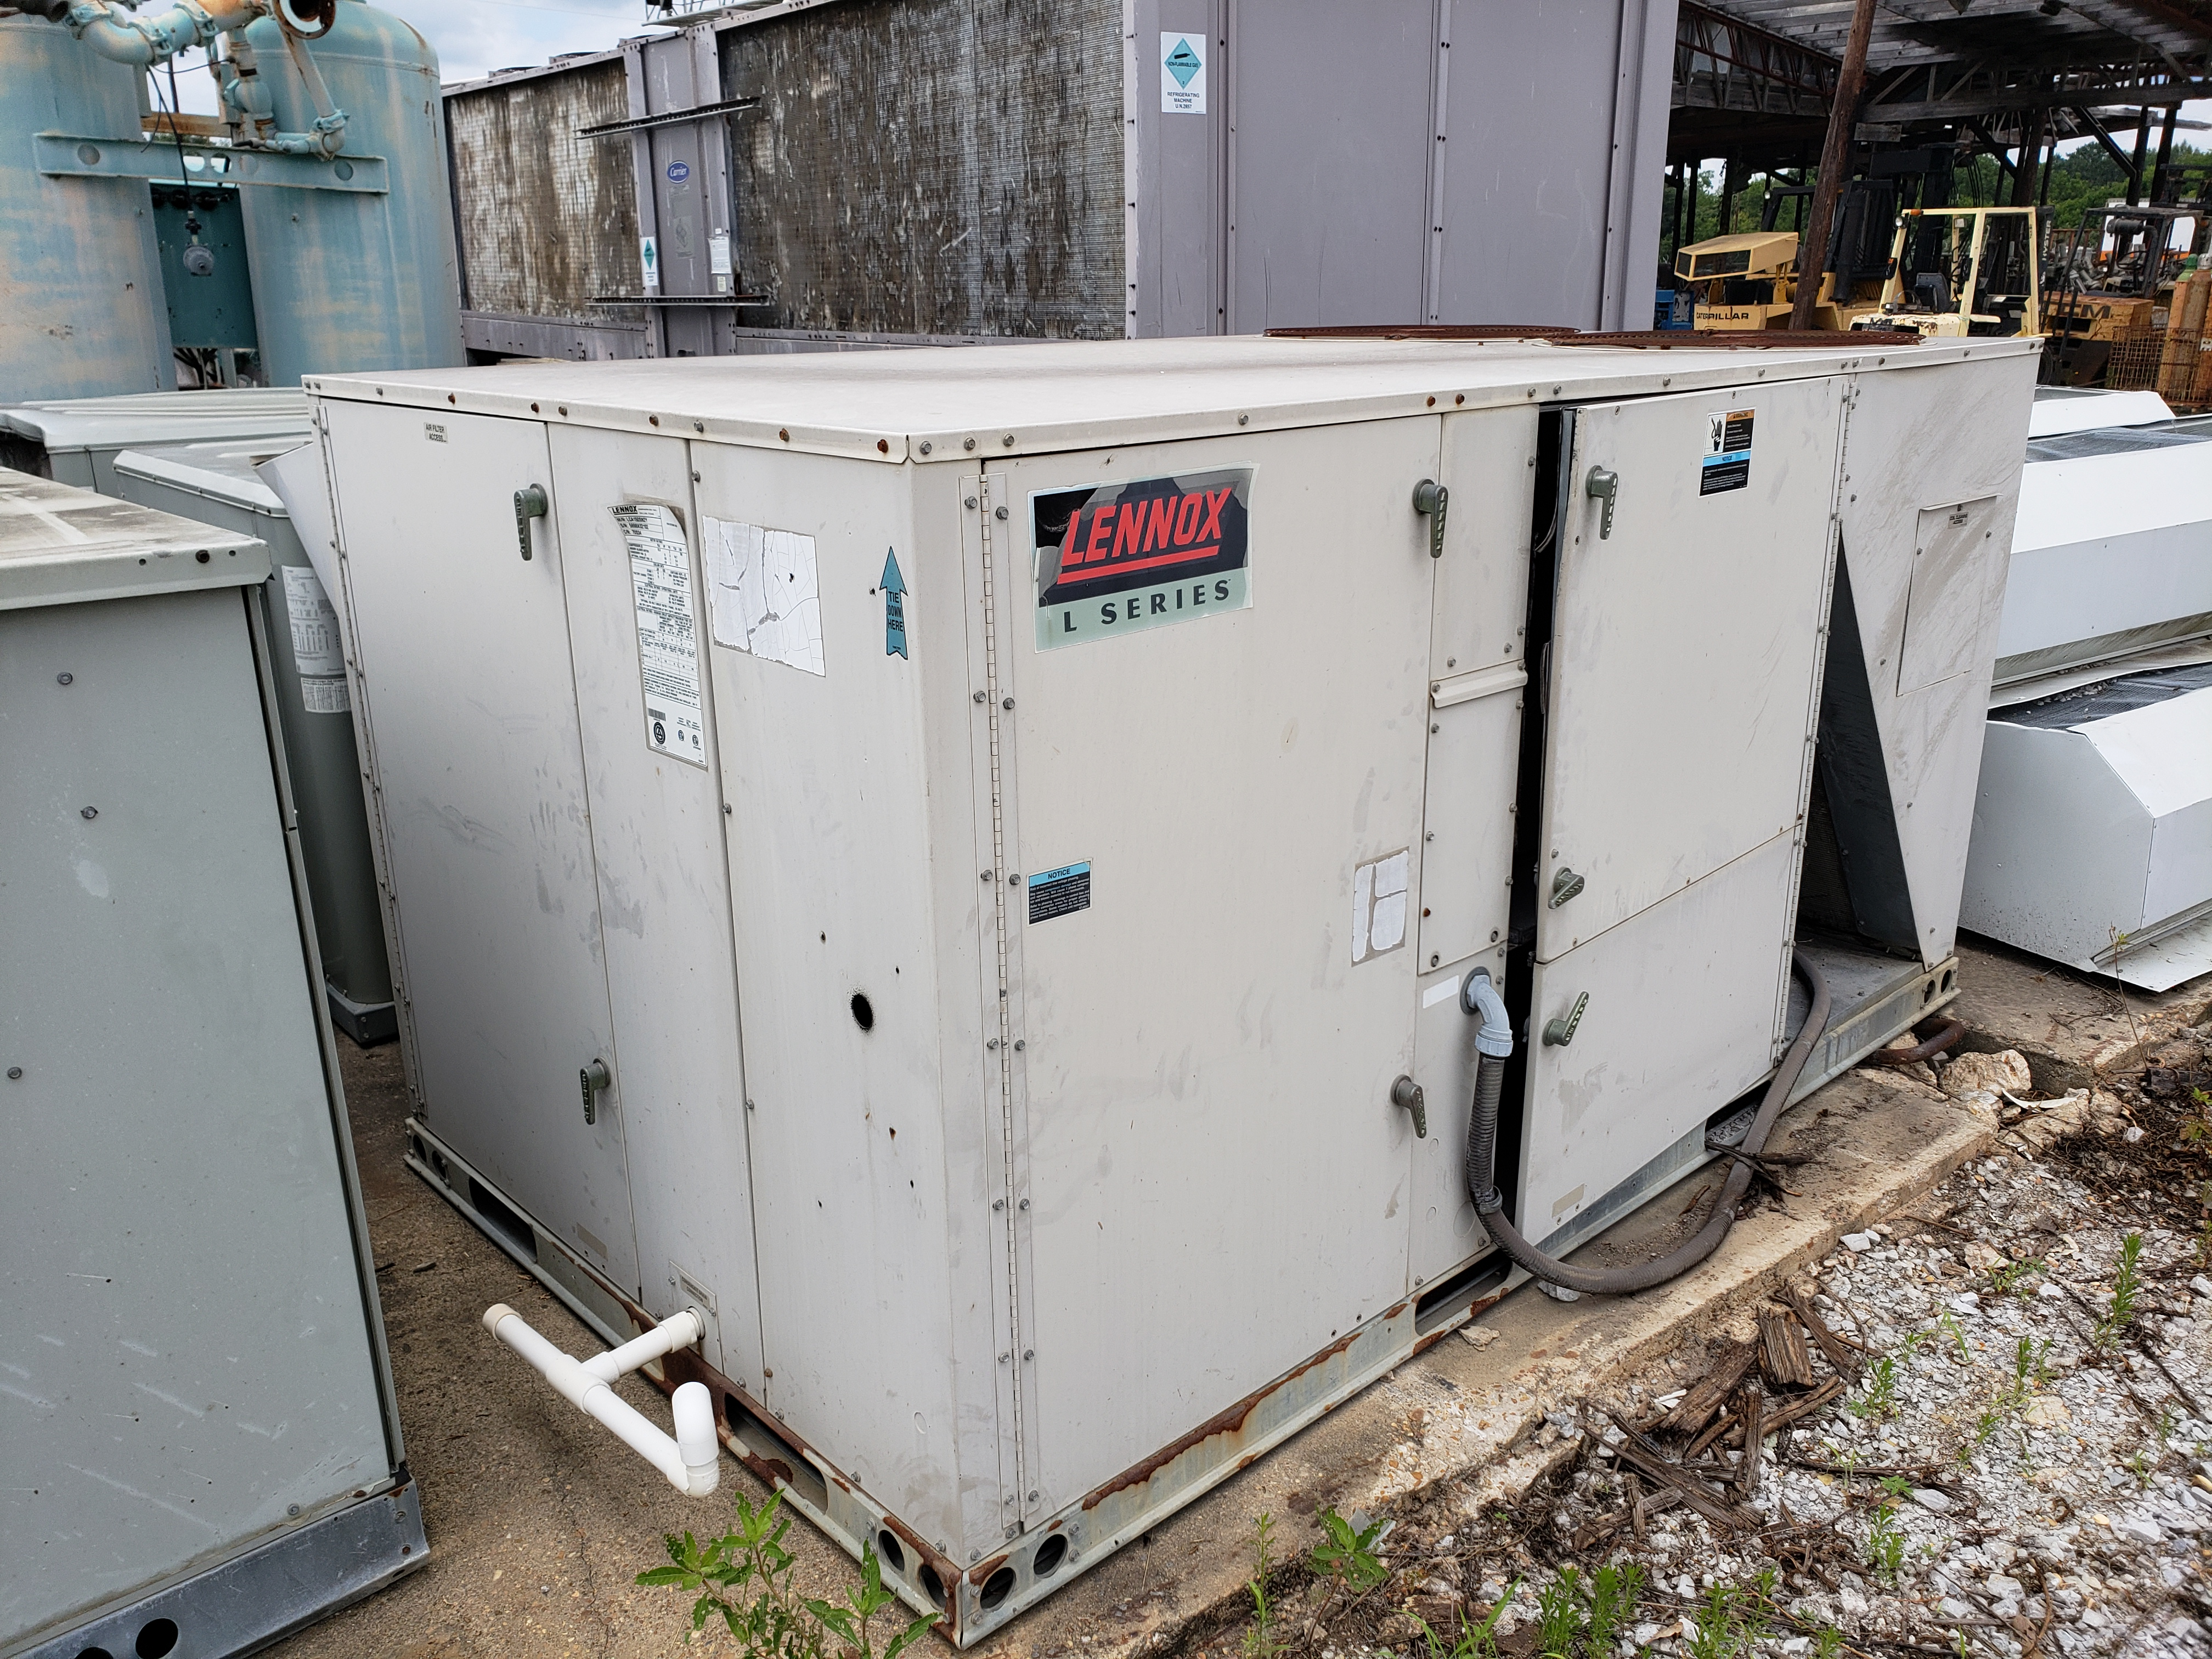 Lennox A/C Unit